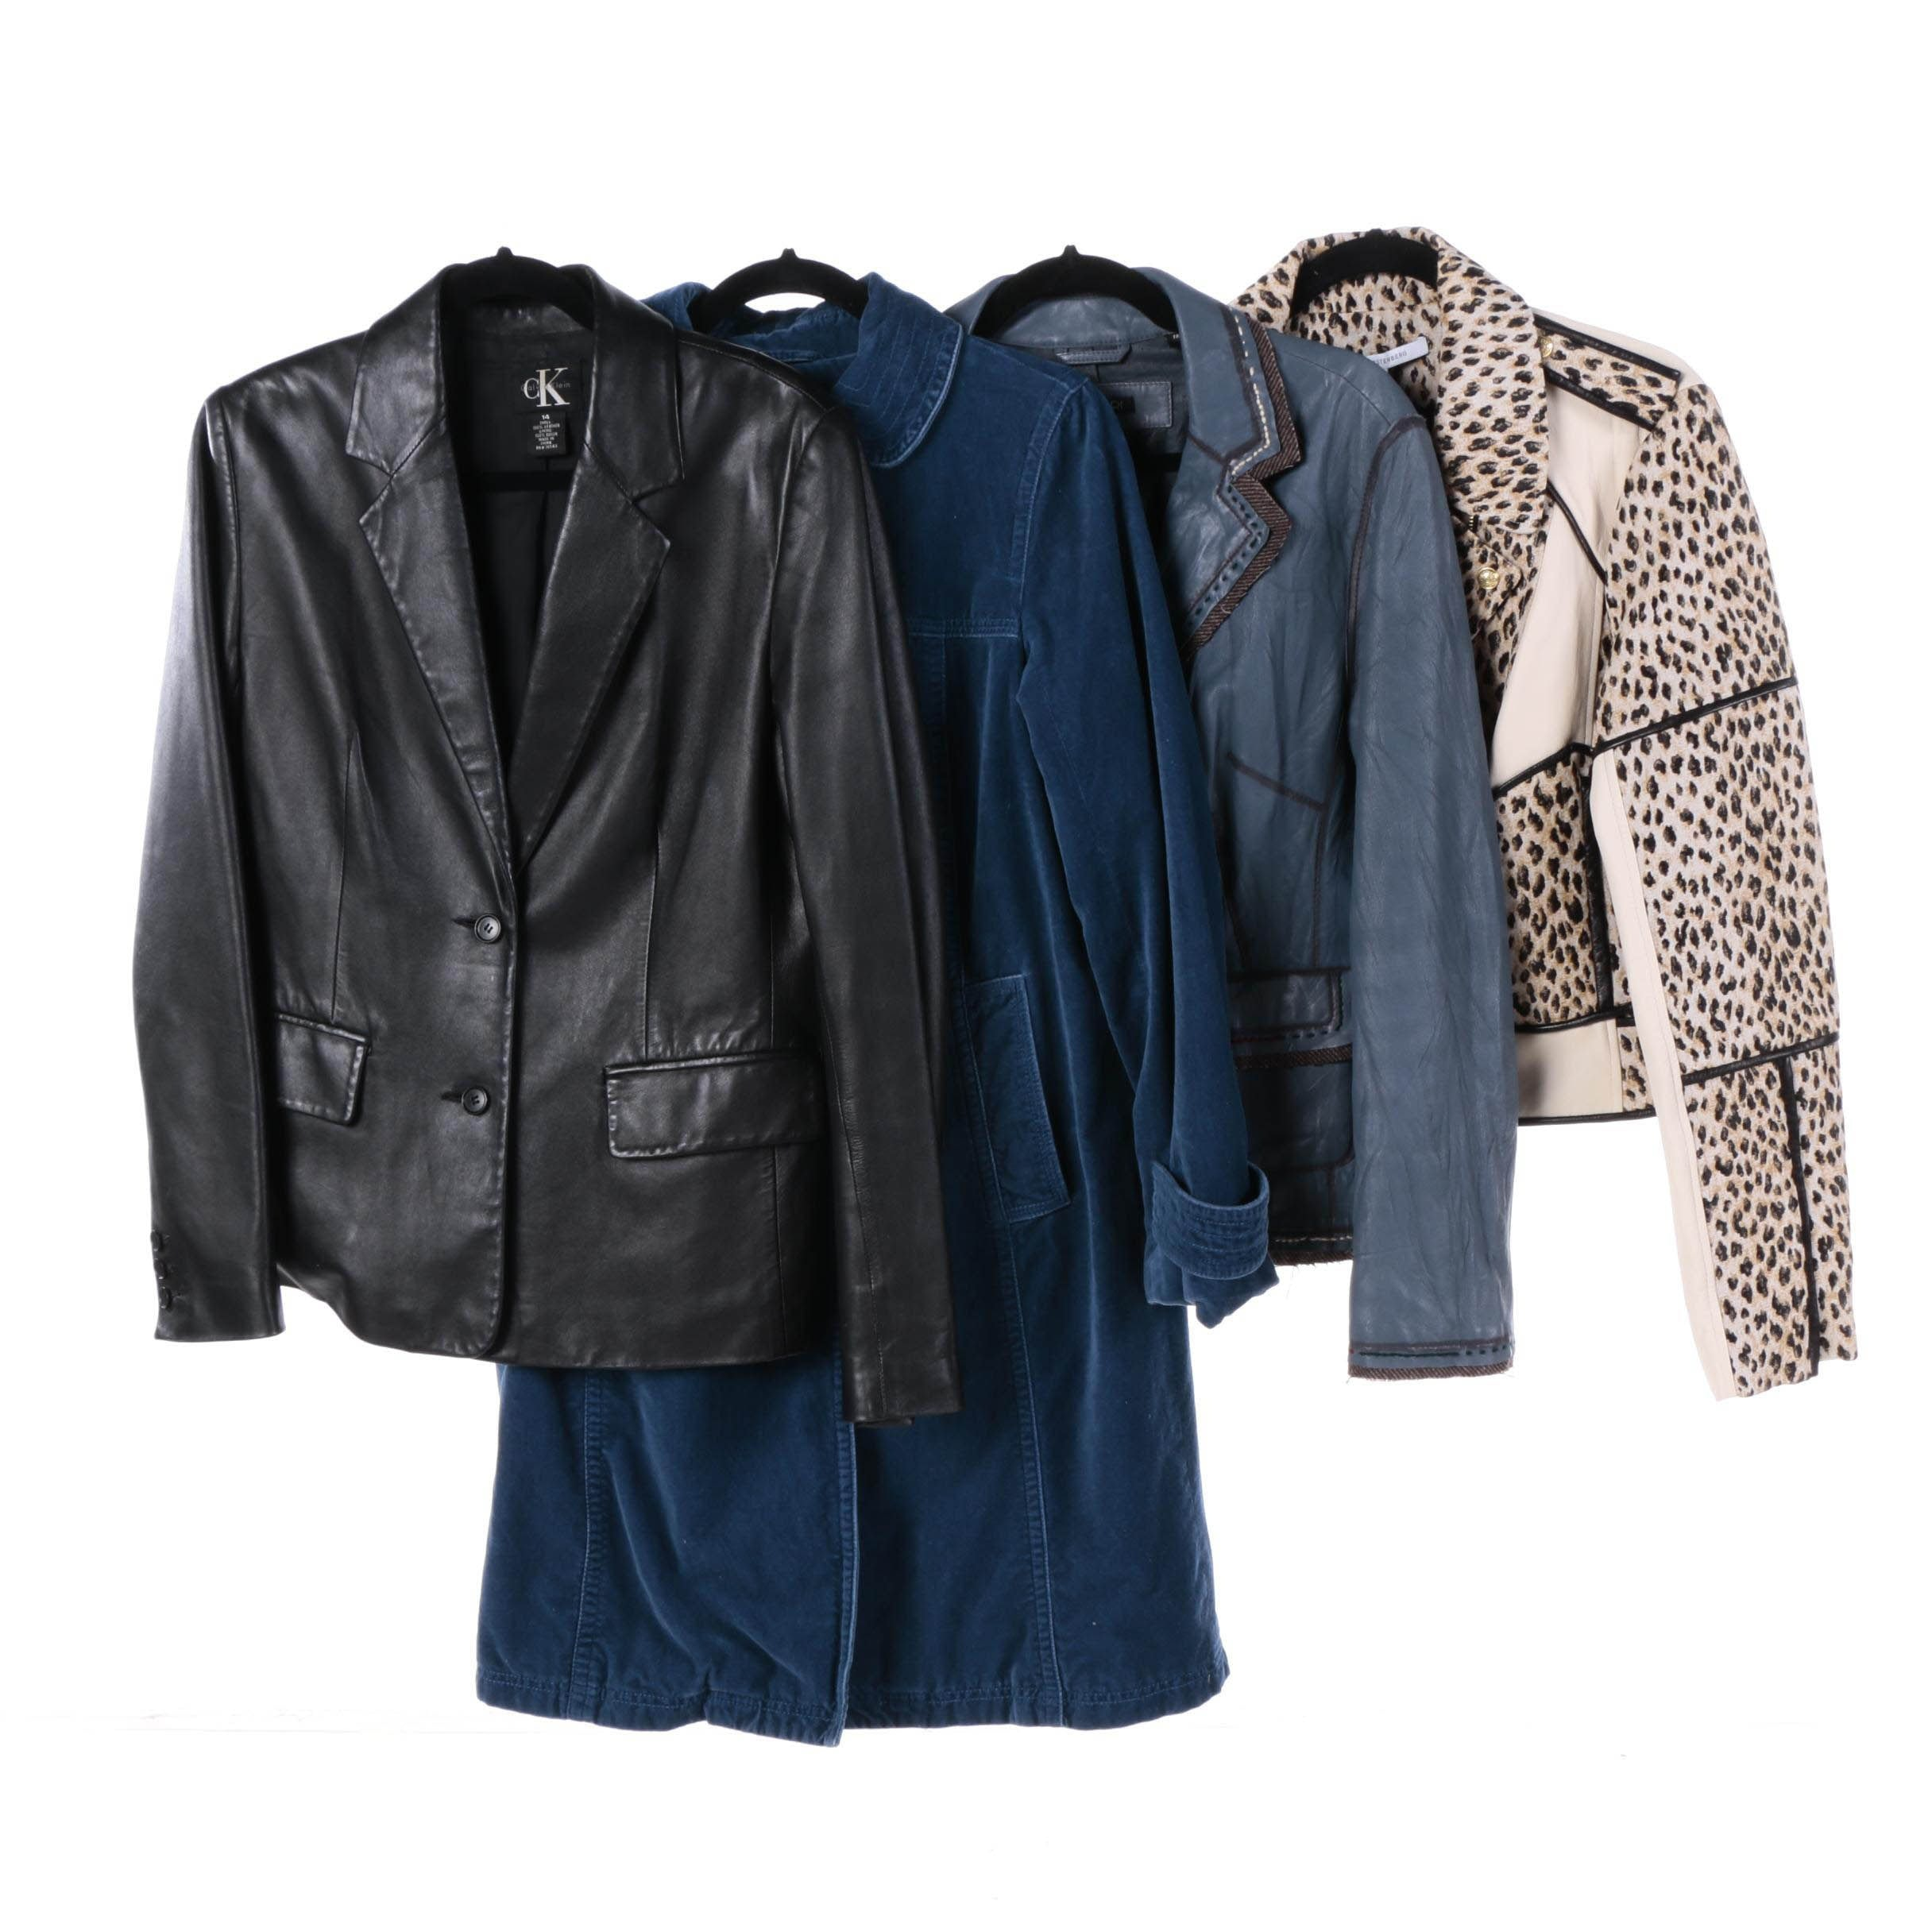 Women's Jackets Including Tahari, Diane von Furstenberg and Calvin Klein